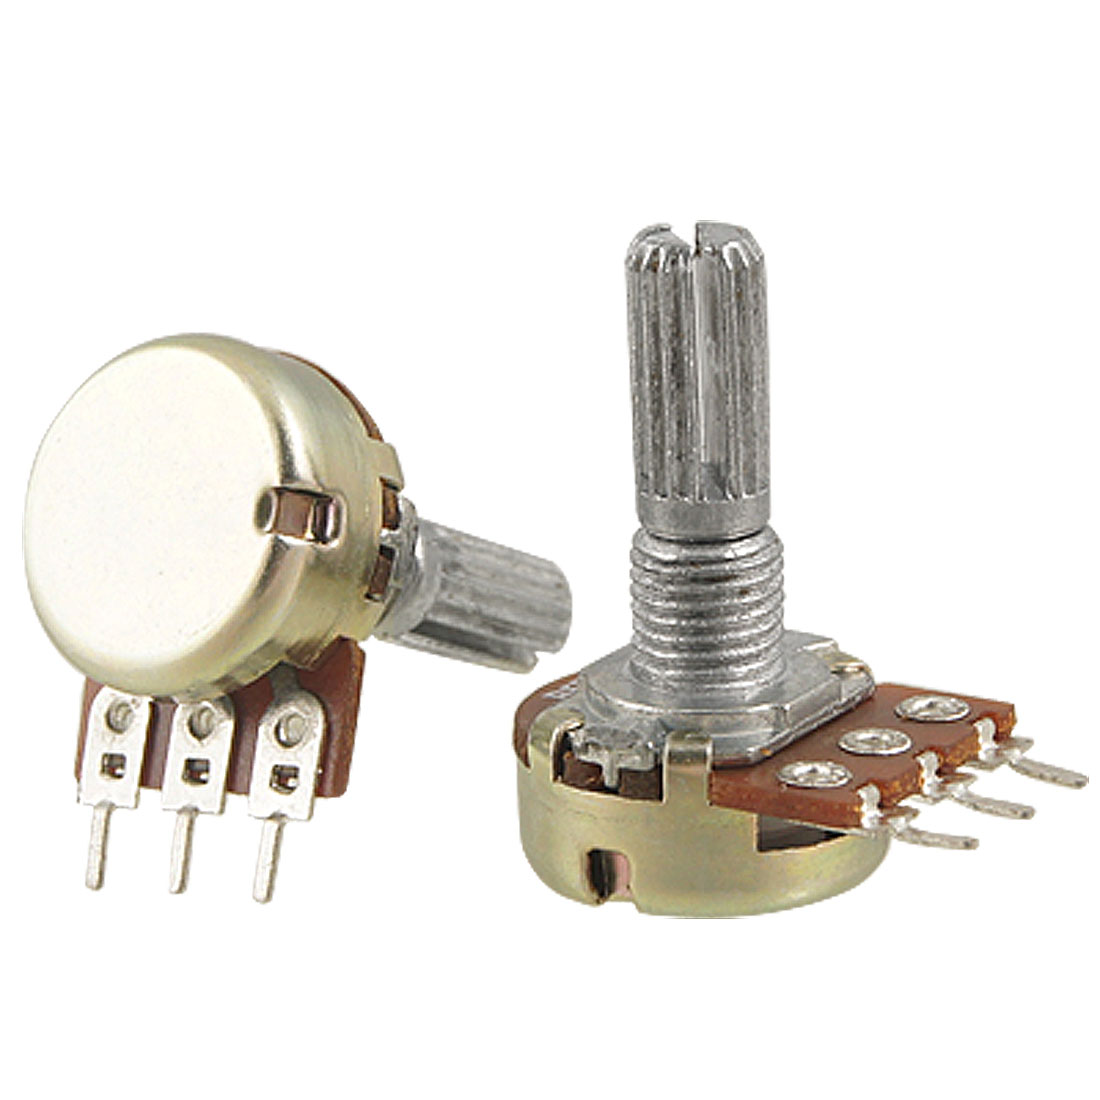 2 Pieces B5K 5K ohm Single Linear Taper Ratory Potentiometers